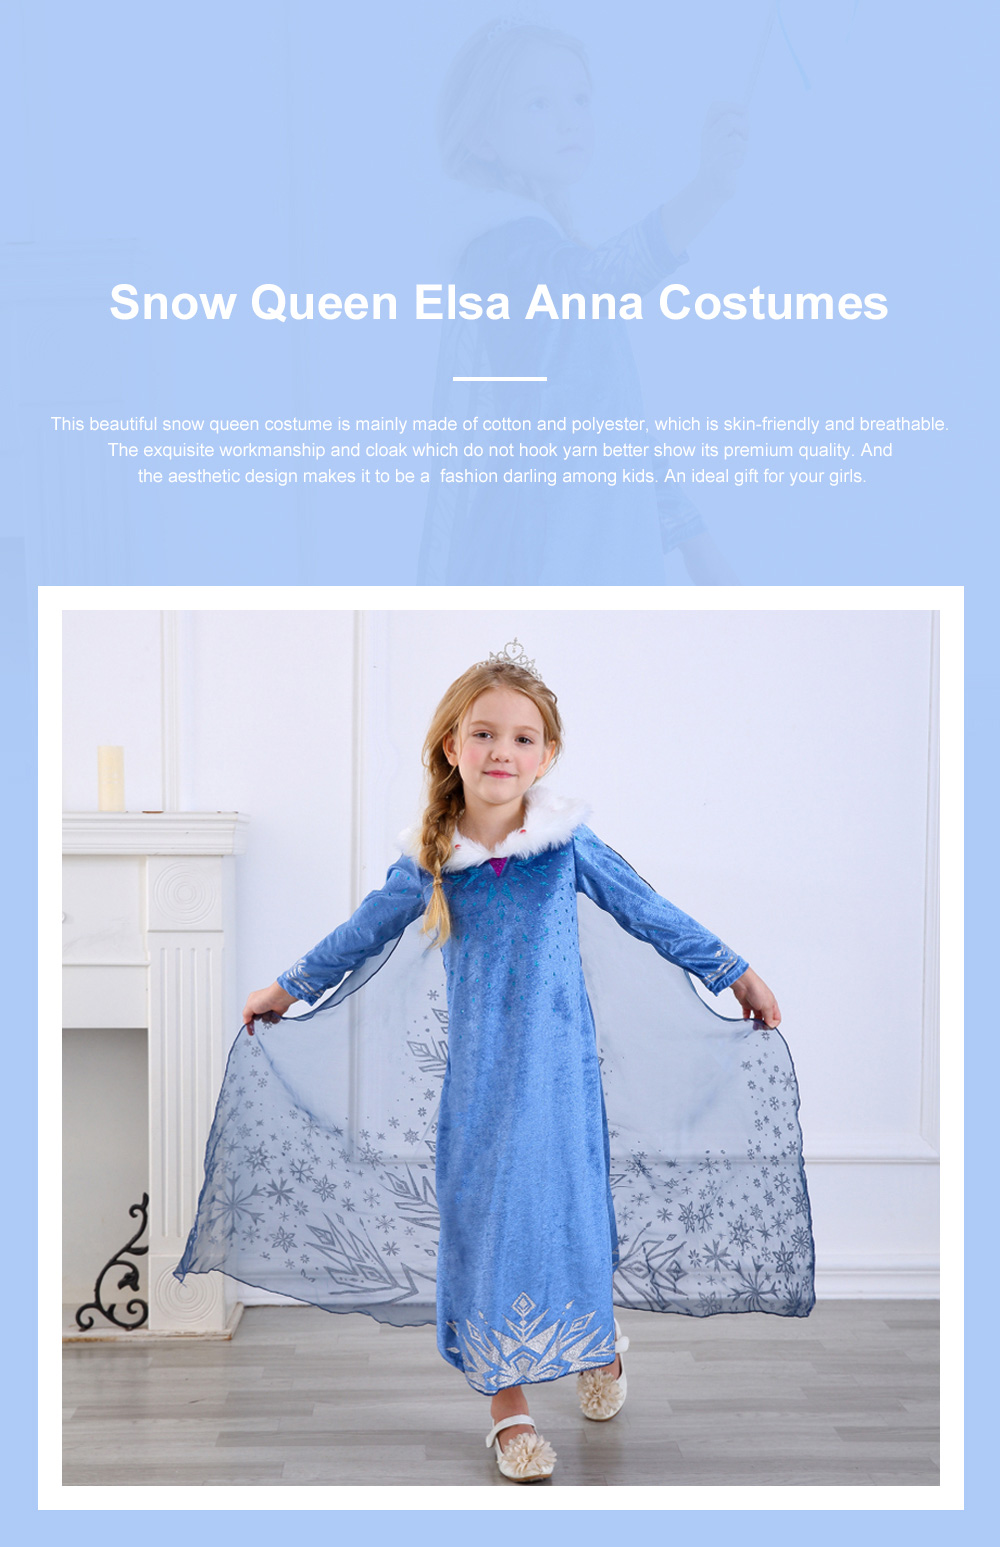 Snow Queen Princess Costumes Elsa Anna Cosplay Dress with Beautiful Cloak for Girls Princess in Party 0